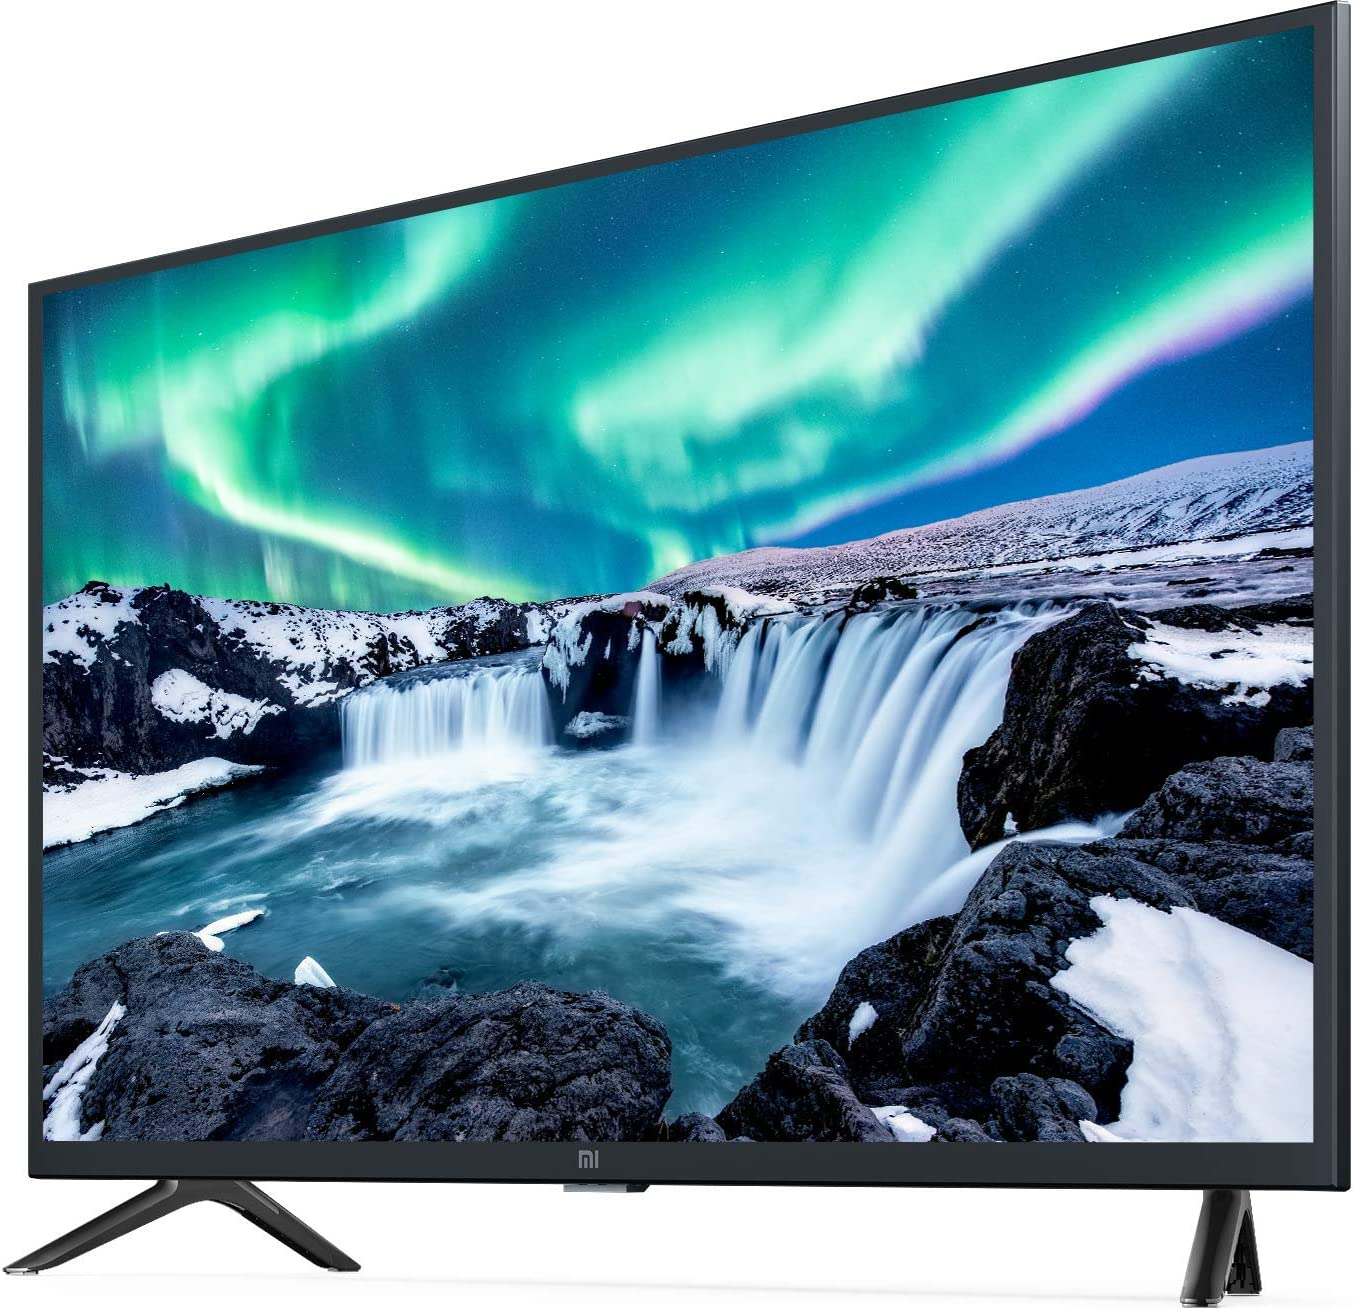 Xiaomi L32M5-5ASP - Mi LED TV 4A 81,3 cm (32